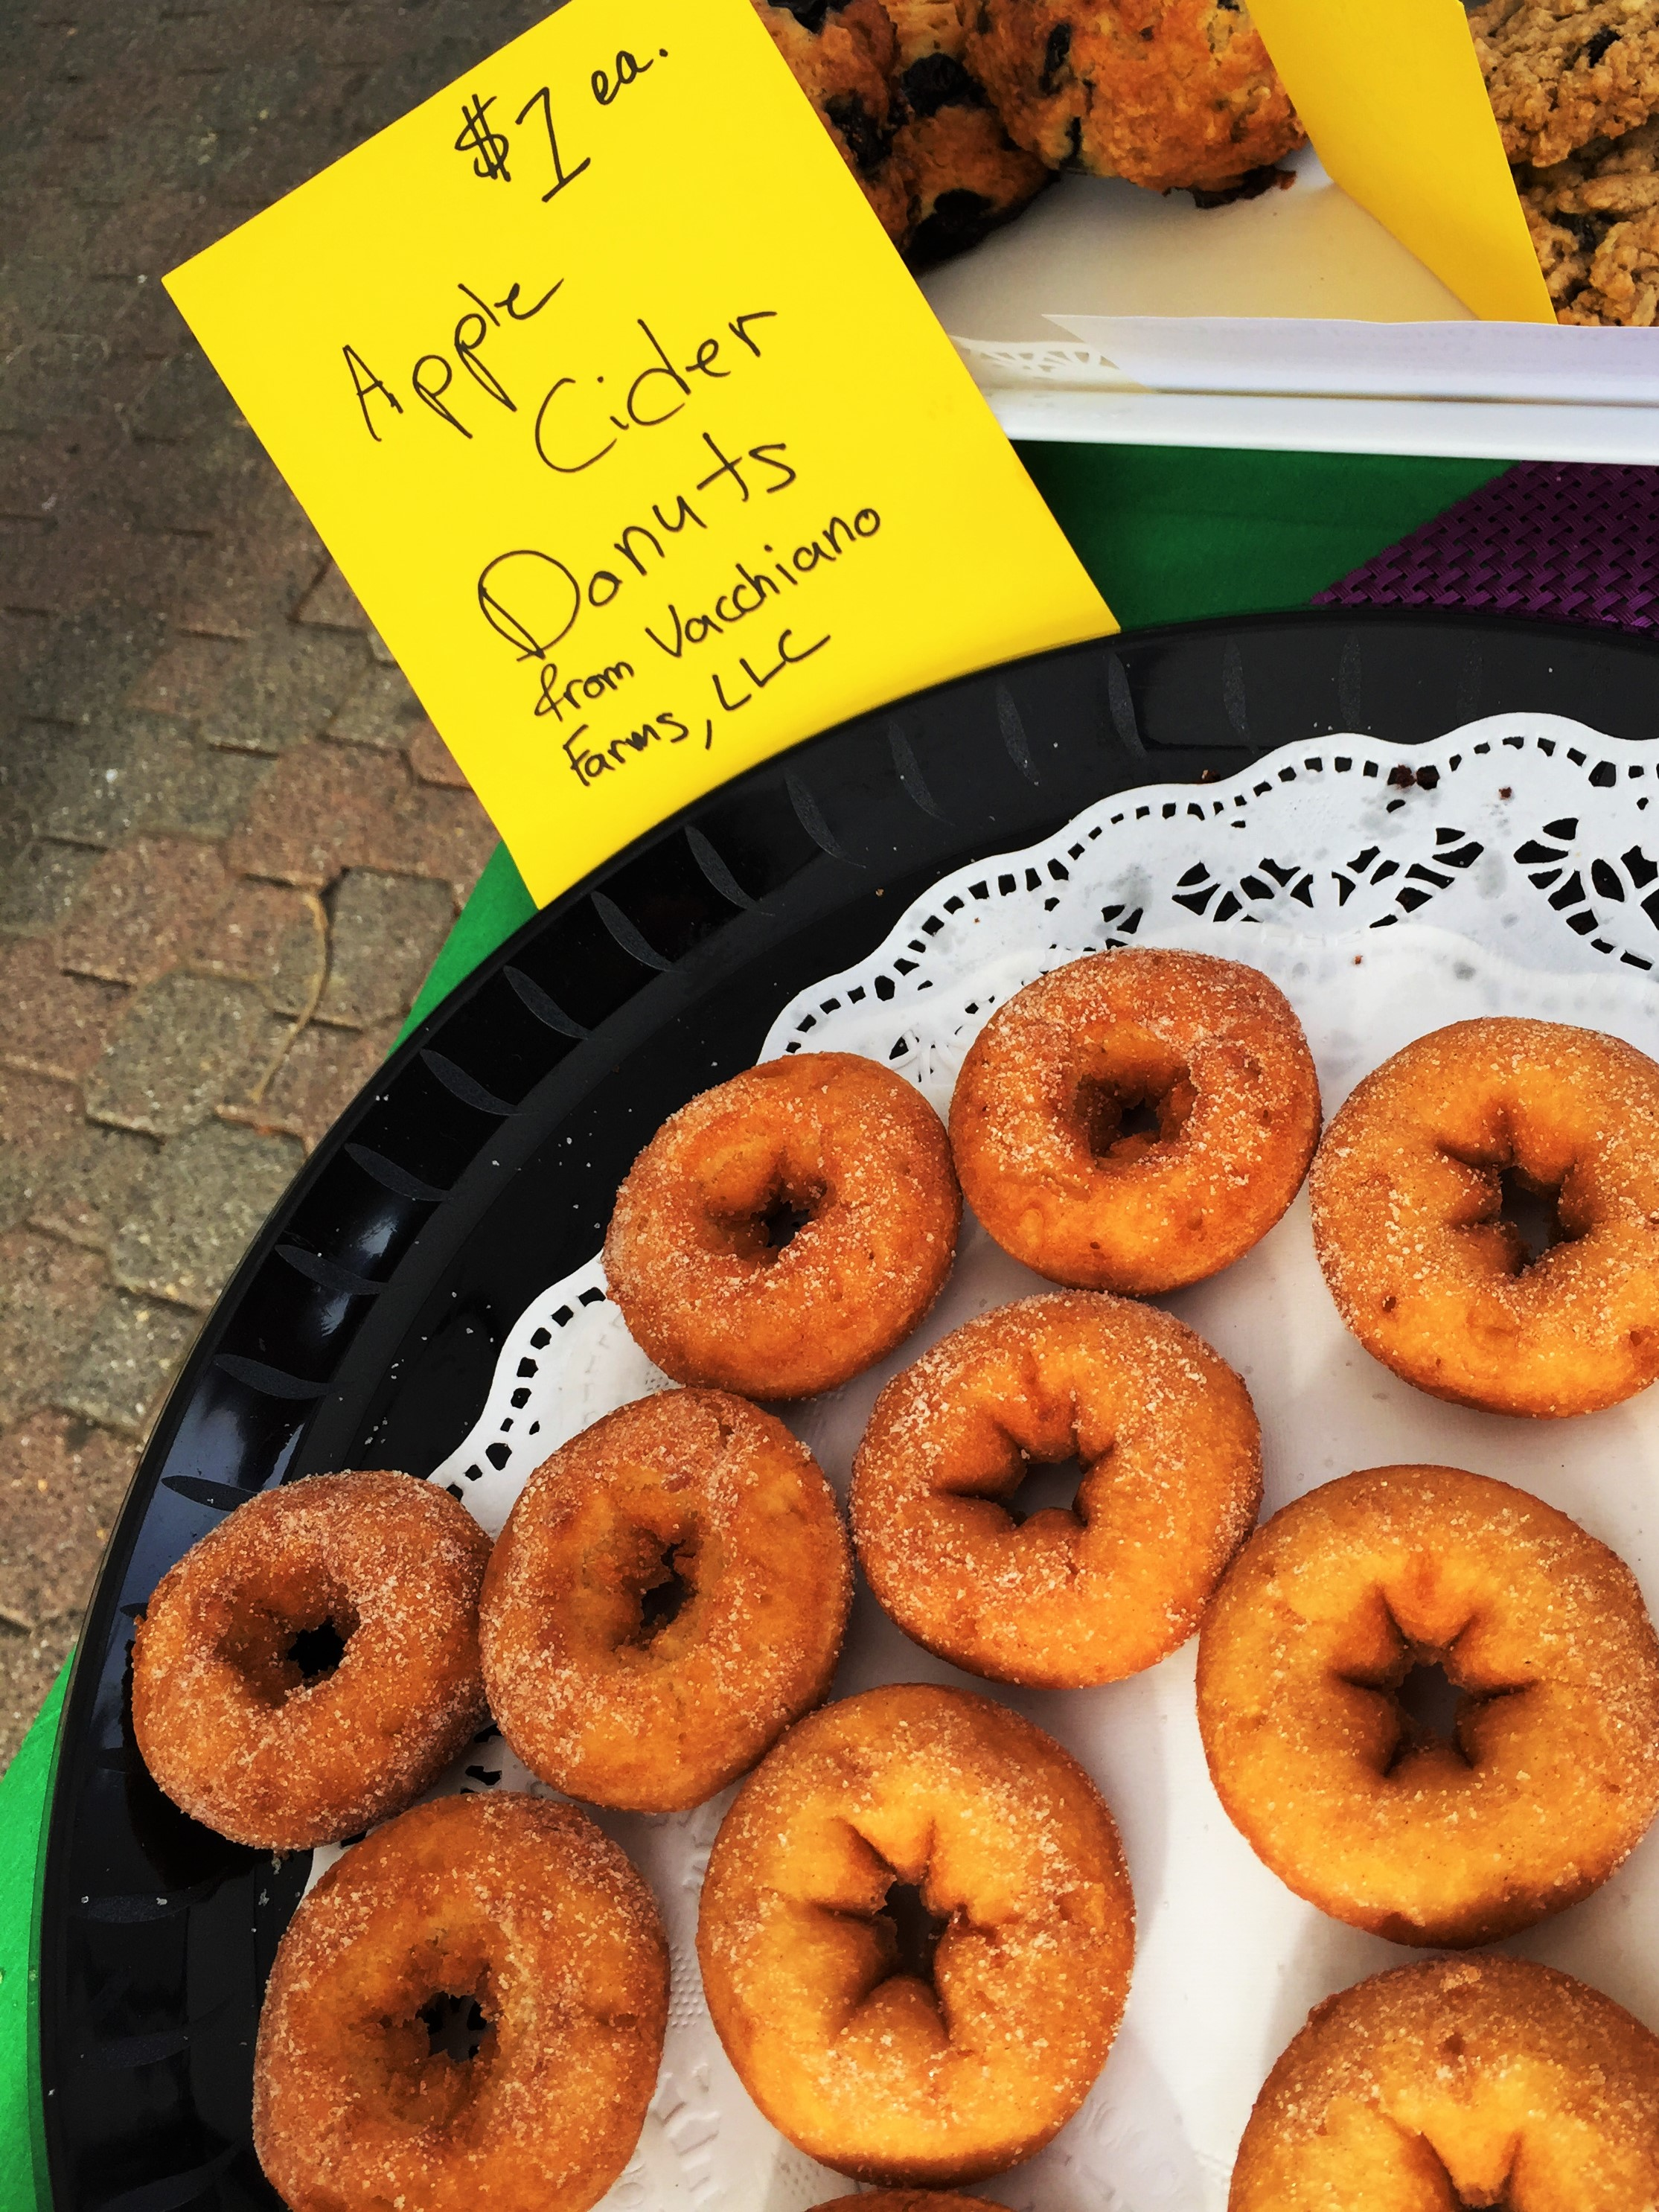 Apple cider doughnuts donated by Vacchiano Farm, at the Montclair Farmer's Market every Saturday!